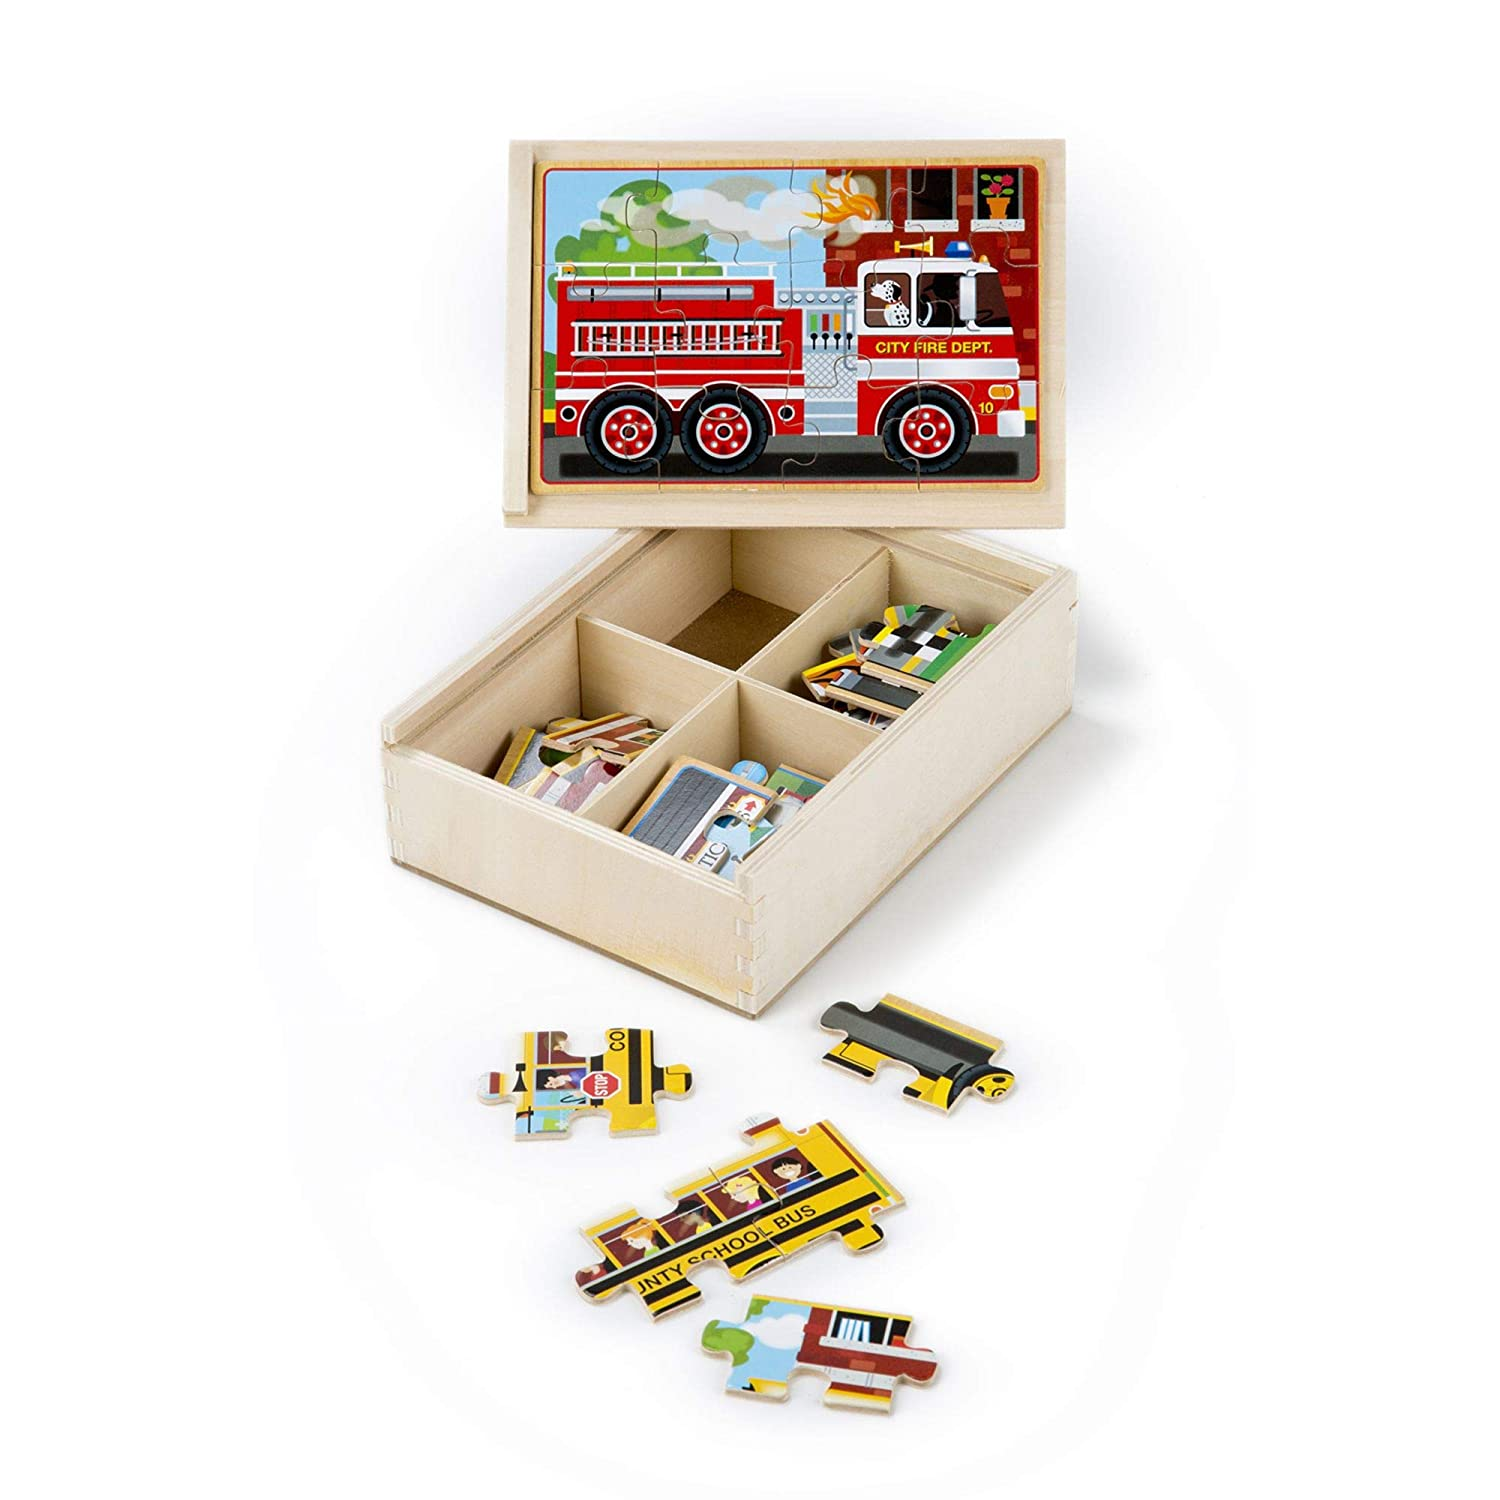 """Melissa & Doug Vehicles Jigsaw Puzzles in a Box, Four Wooden Puzzles, Sturdy Wooden Storage Box, 12-Piece Puzzles, 8"""" H x 6"""" W x 2.5"""" L"""